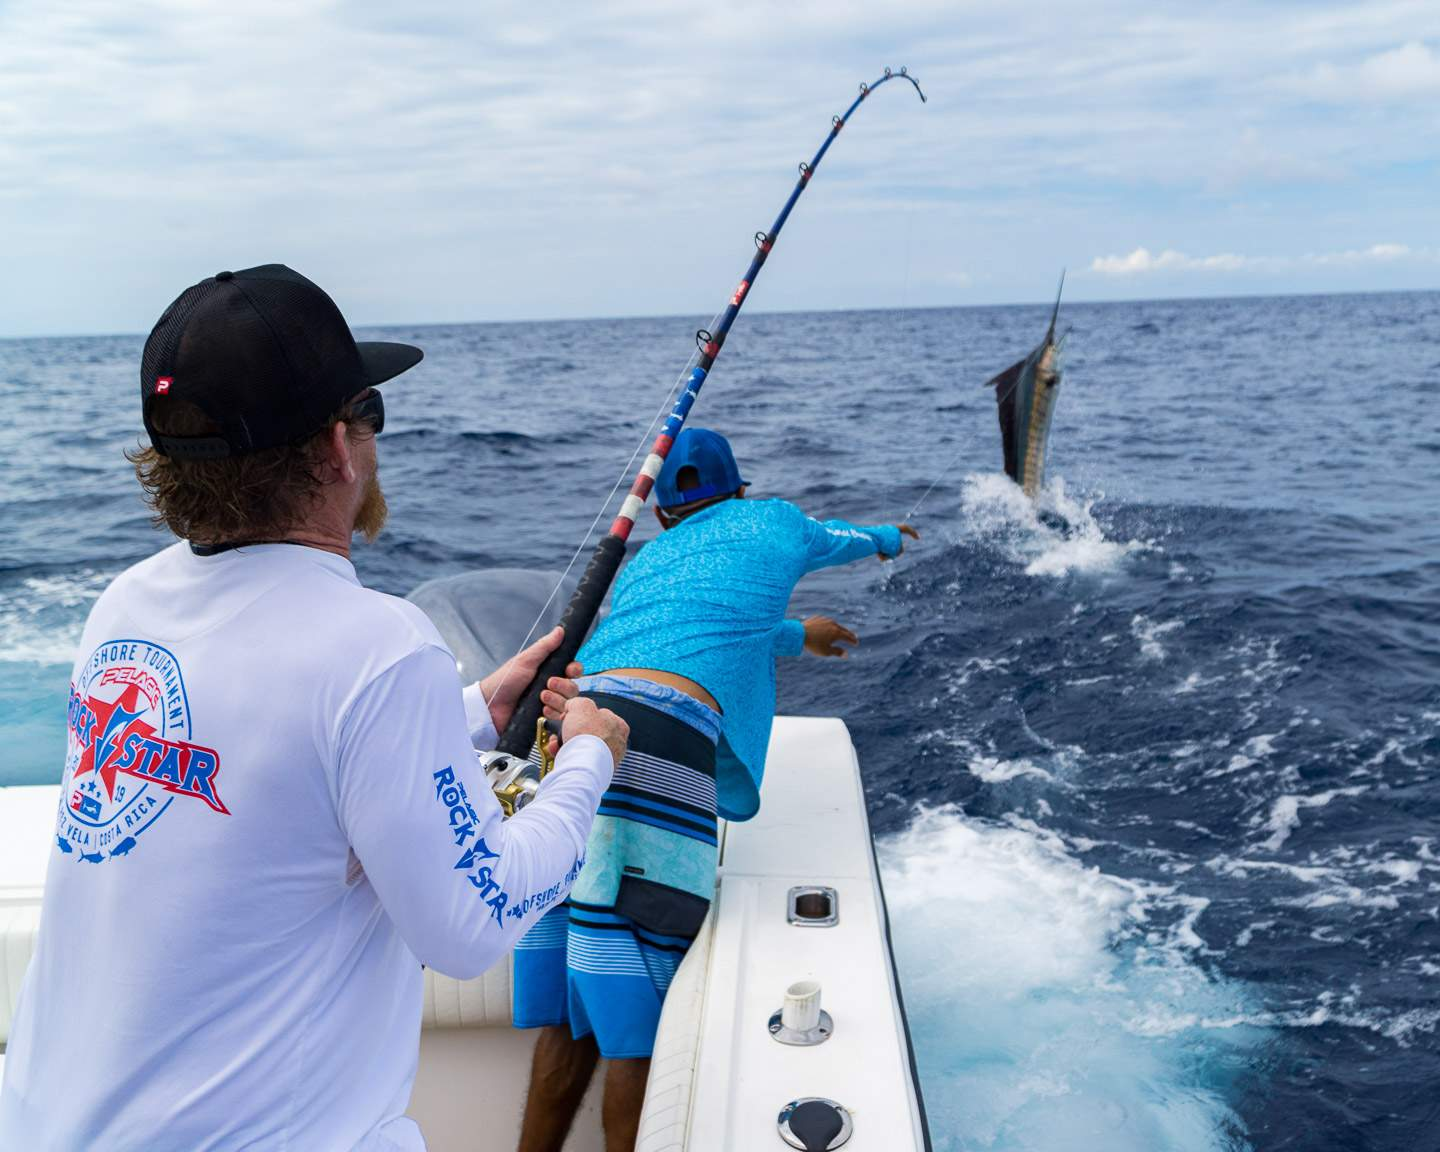 2019 Pelagic Rockstar Offshore Tourament Sailfish Release